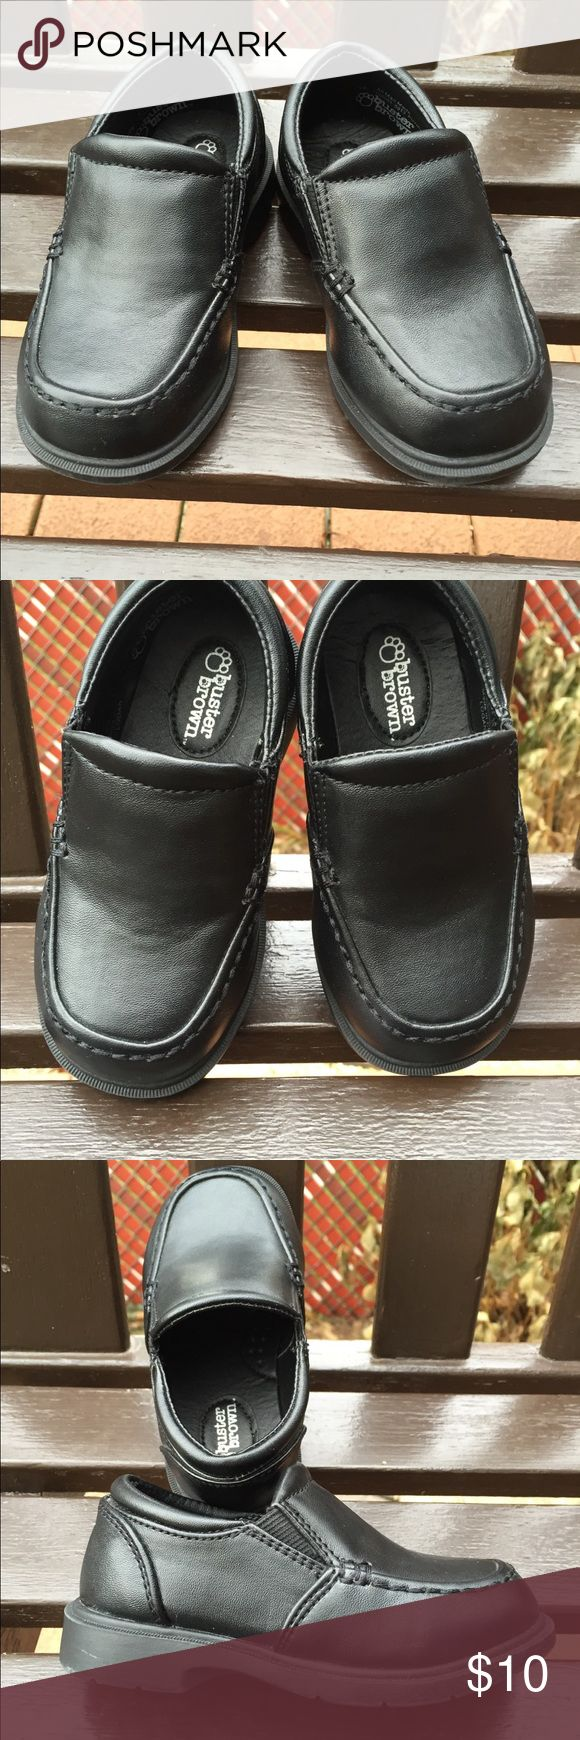 Toddler boys dress shoes Dress shoes slip on black faux leather by Buster Brown. These shoes are in great condition. Perfect for the holidays, communion or just to wear to school. No signs of wear. Size toddler boy 7W. Buster Brown Shoes Dress Shoes